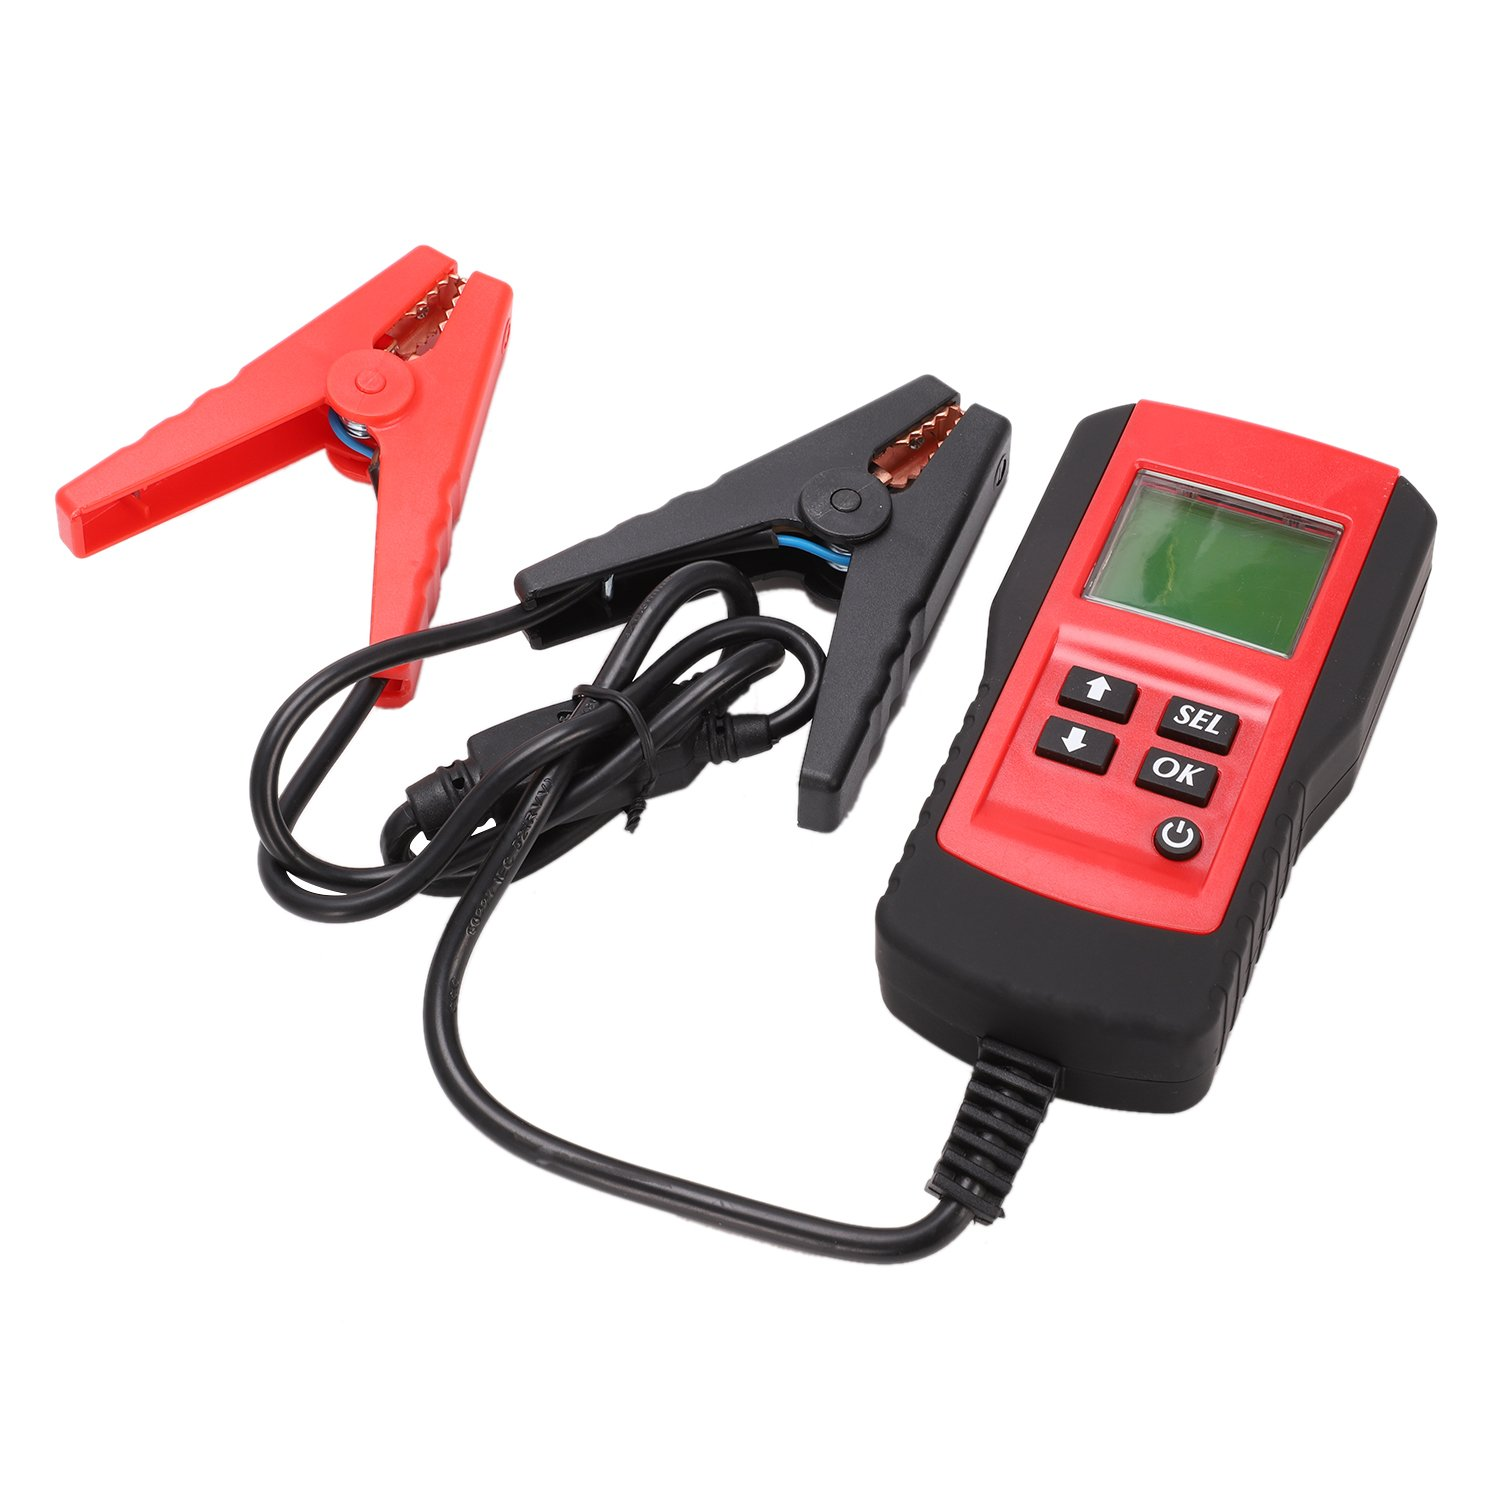 Toogoo Digital 12V Car Battery Tester Automotive Battery Load Tester and Analyzer Of Battery Life Percentage,Voltage, Resistance and CCA Value For Flood, Gel, AGM, Deep Cycle Battery Red